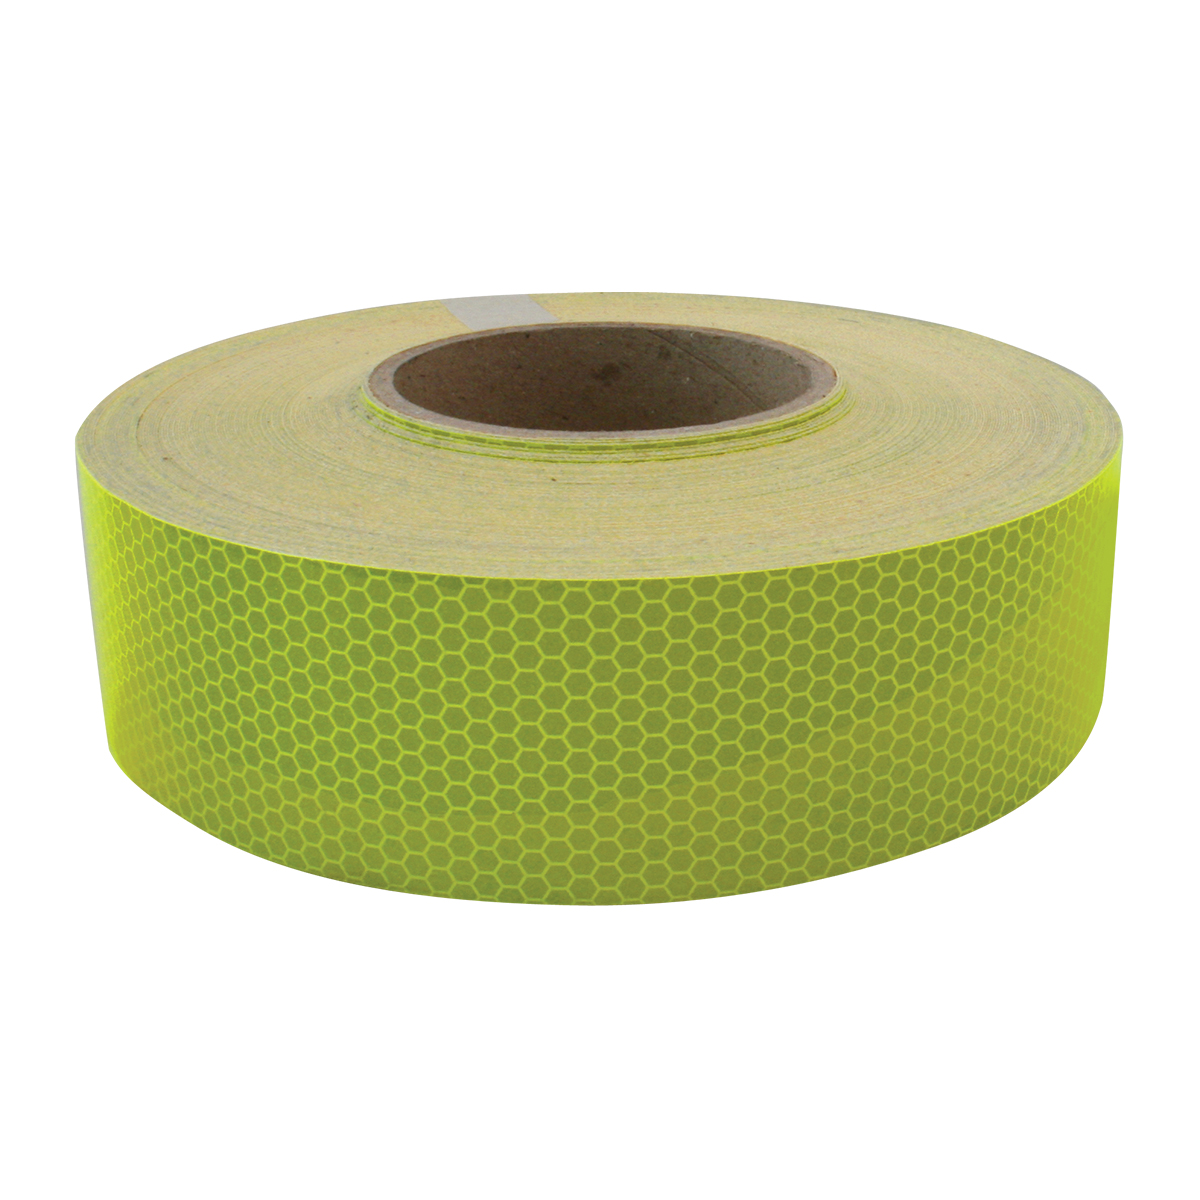 92299 DOT-C2 Conspicuity Tape in Fluorescent Green 150' Roll